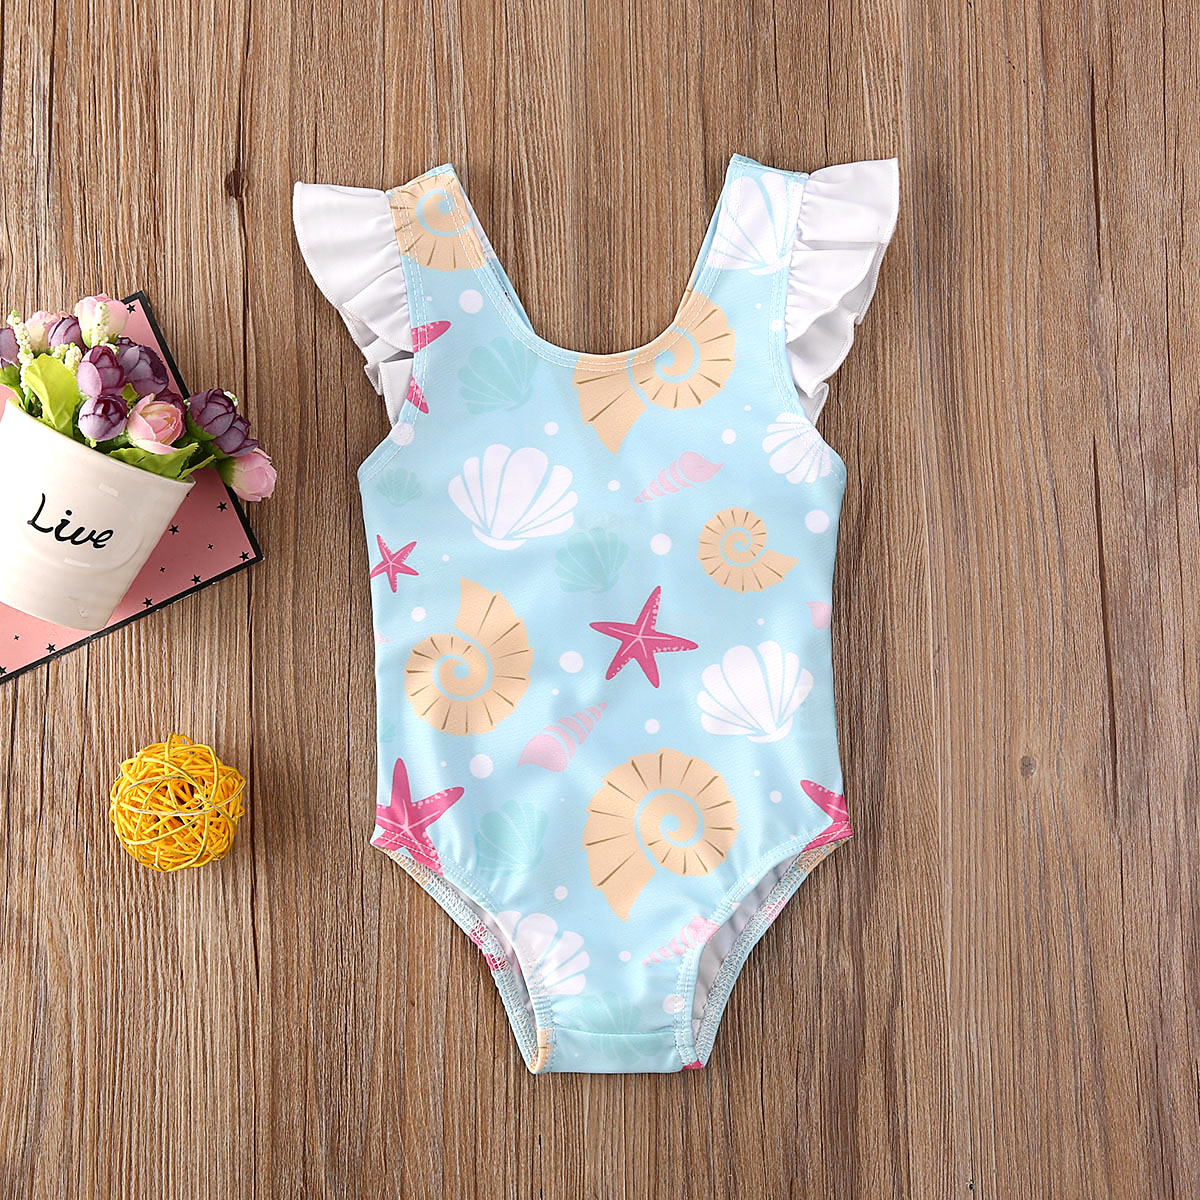 Pudcoco Newborn Baby Girl Clothes Beach Shell Print Sleeveless Bowknot Bikini Swimwear Swimsuit Swimming Bathing Suit Clothes